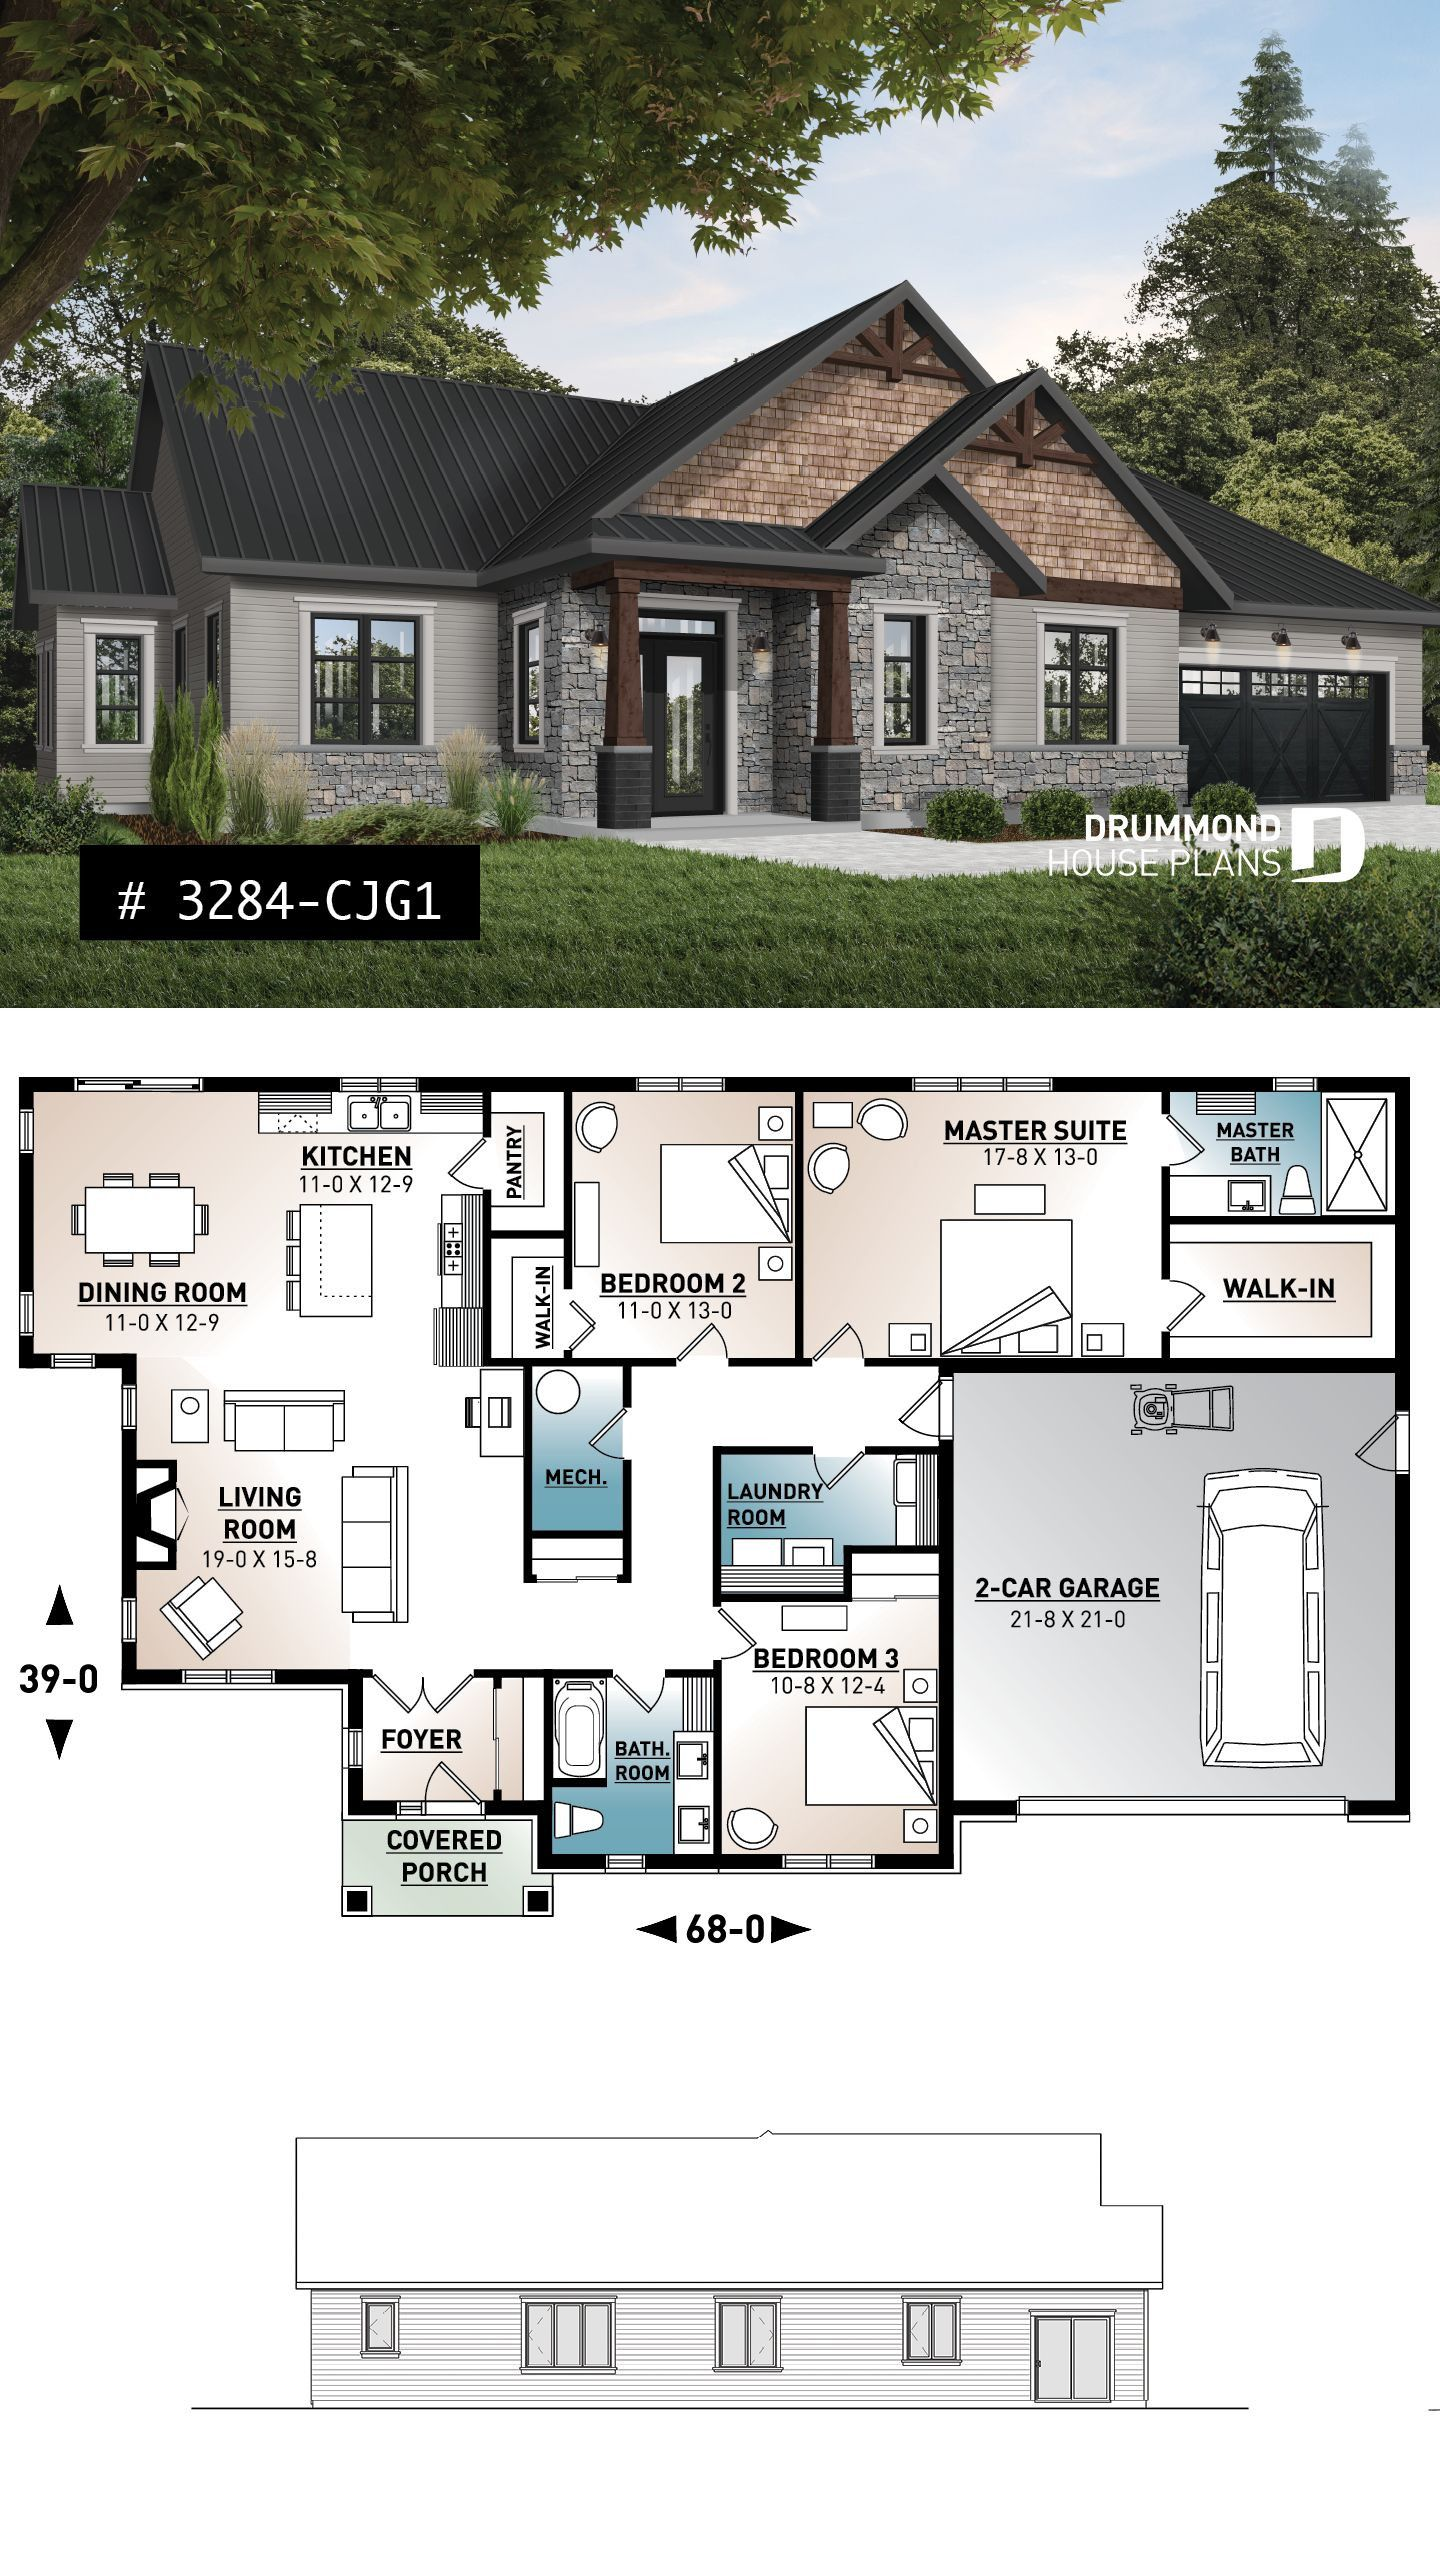 House Plans With Large Dining Rooms 2020 Craftsman House Plans Sims House Plans Bungalow House Plans